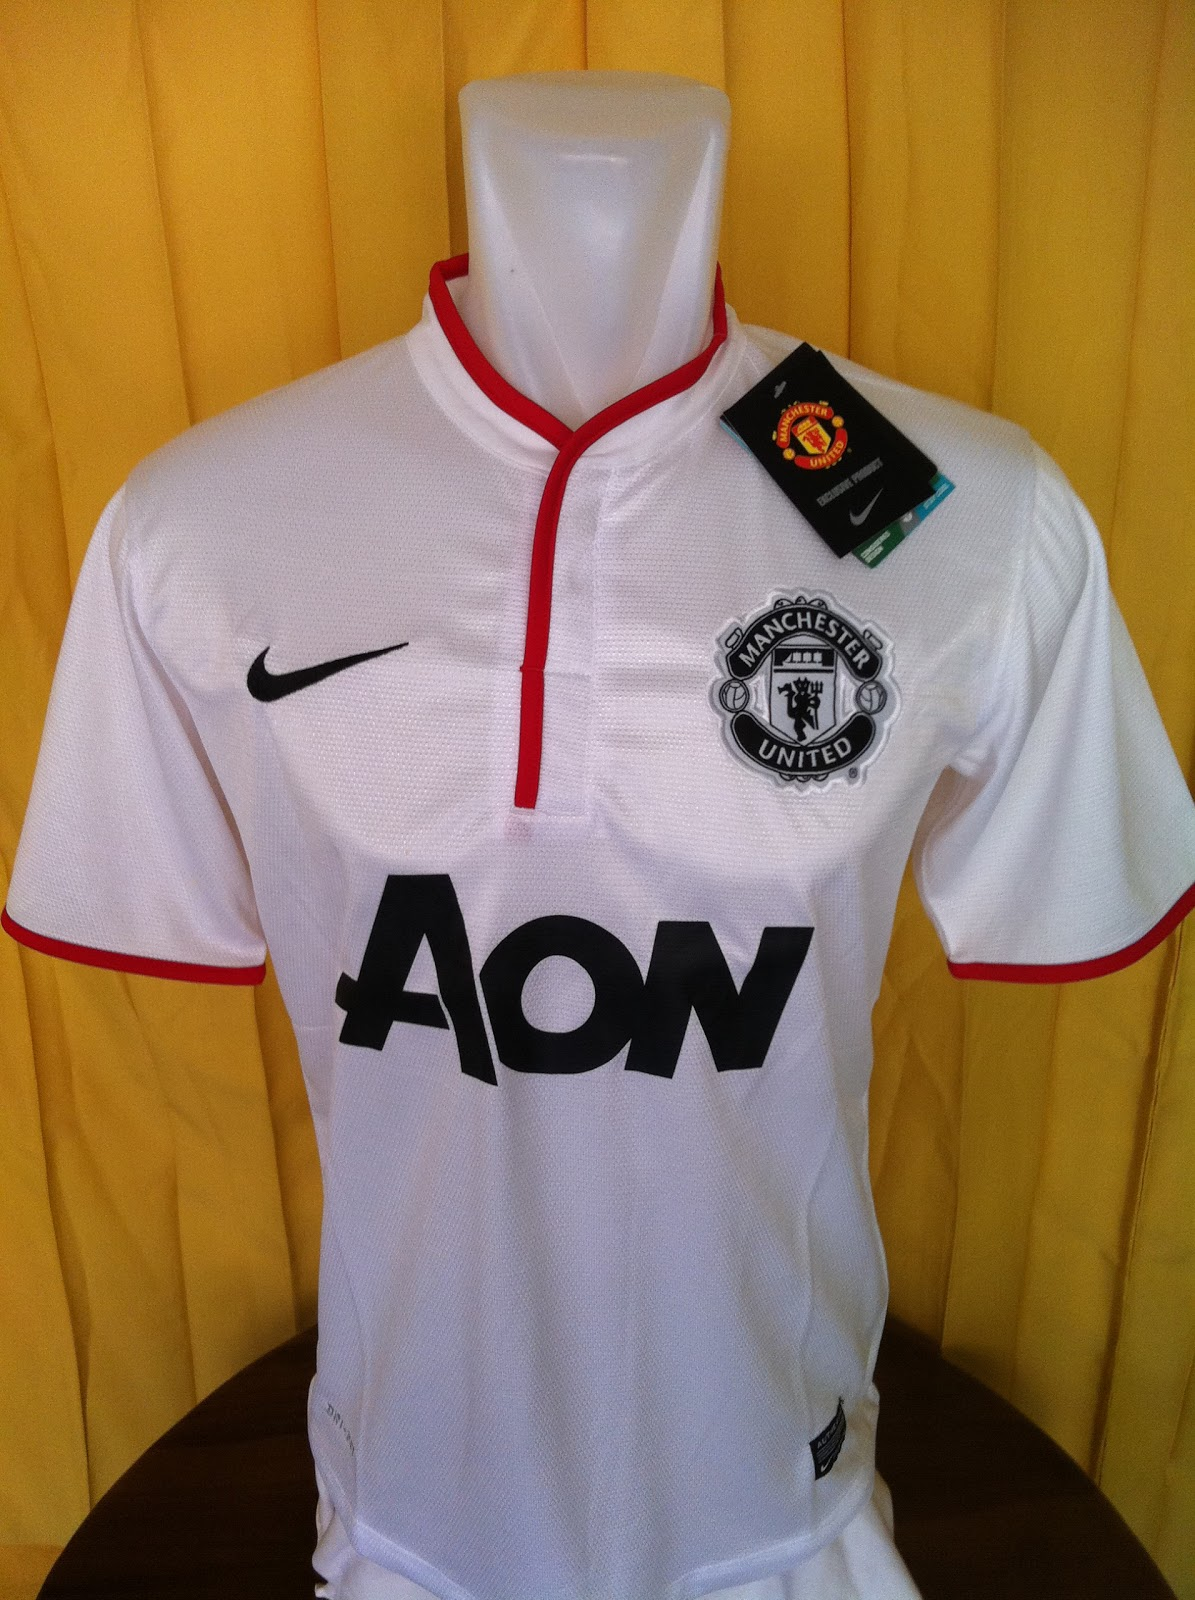 6882f9130 Erlisa Store: Barclays Premier league